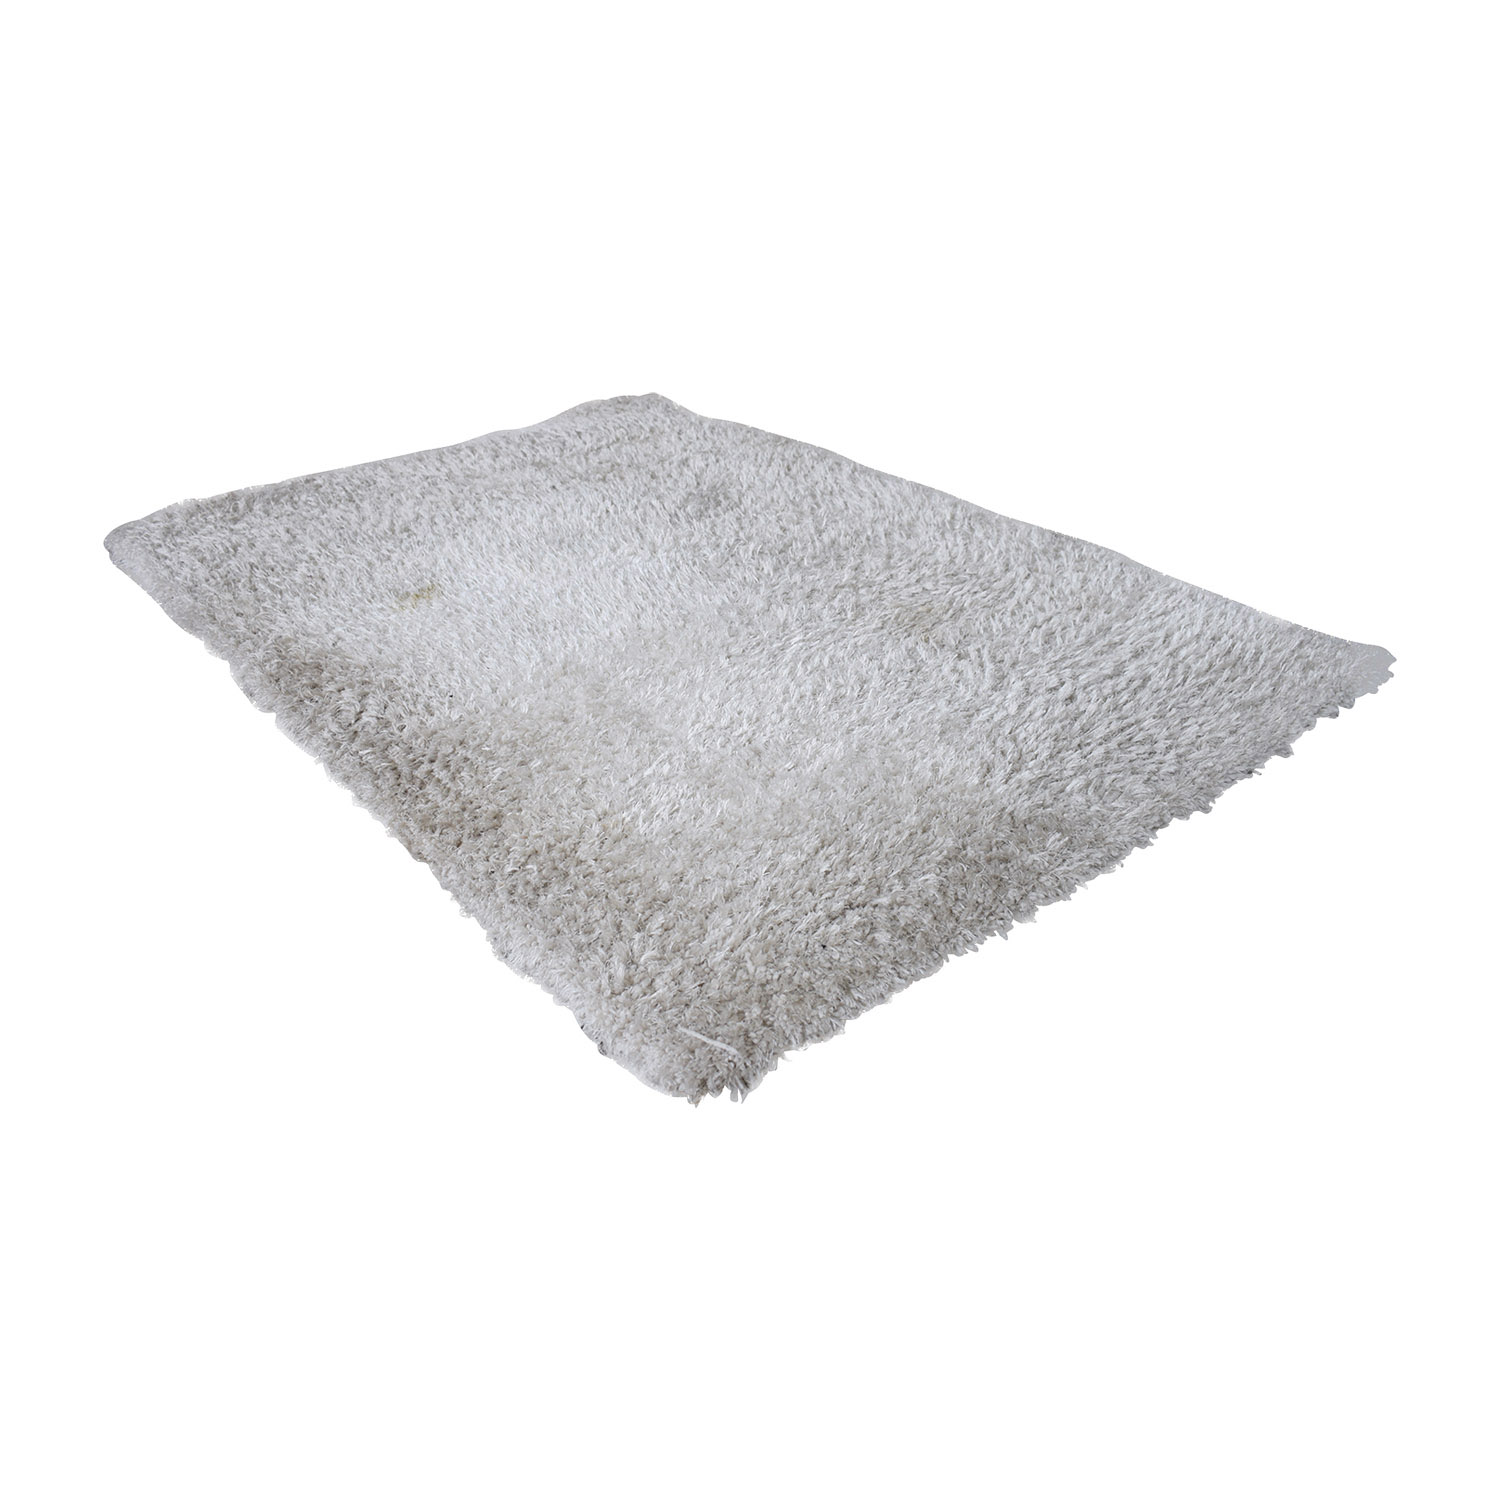 buy Bob's Furniture Venice White Shag Rug Bob's Furniture